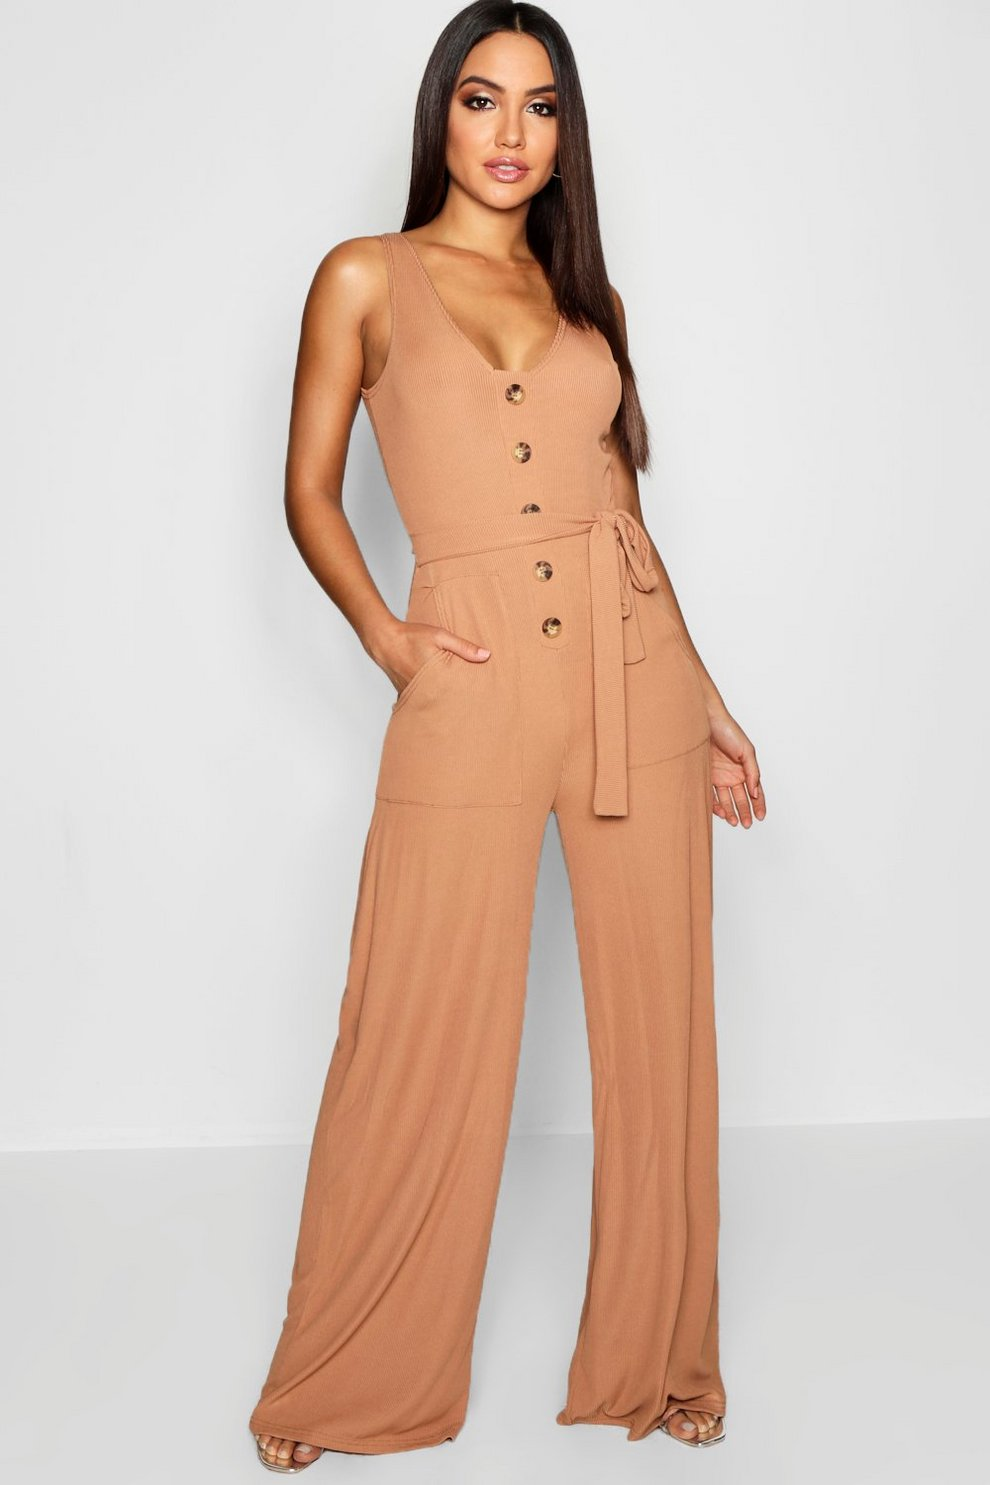 39bdaaab820d Horn Button Rib Tie Belt Pocket Jumpsuit